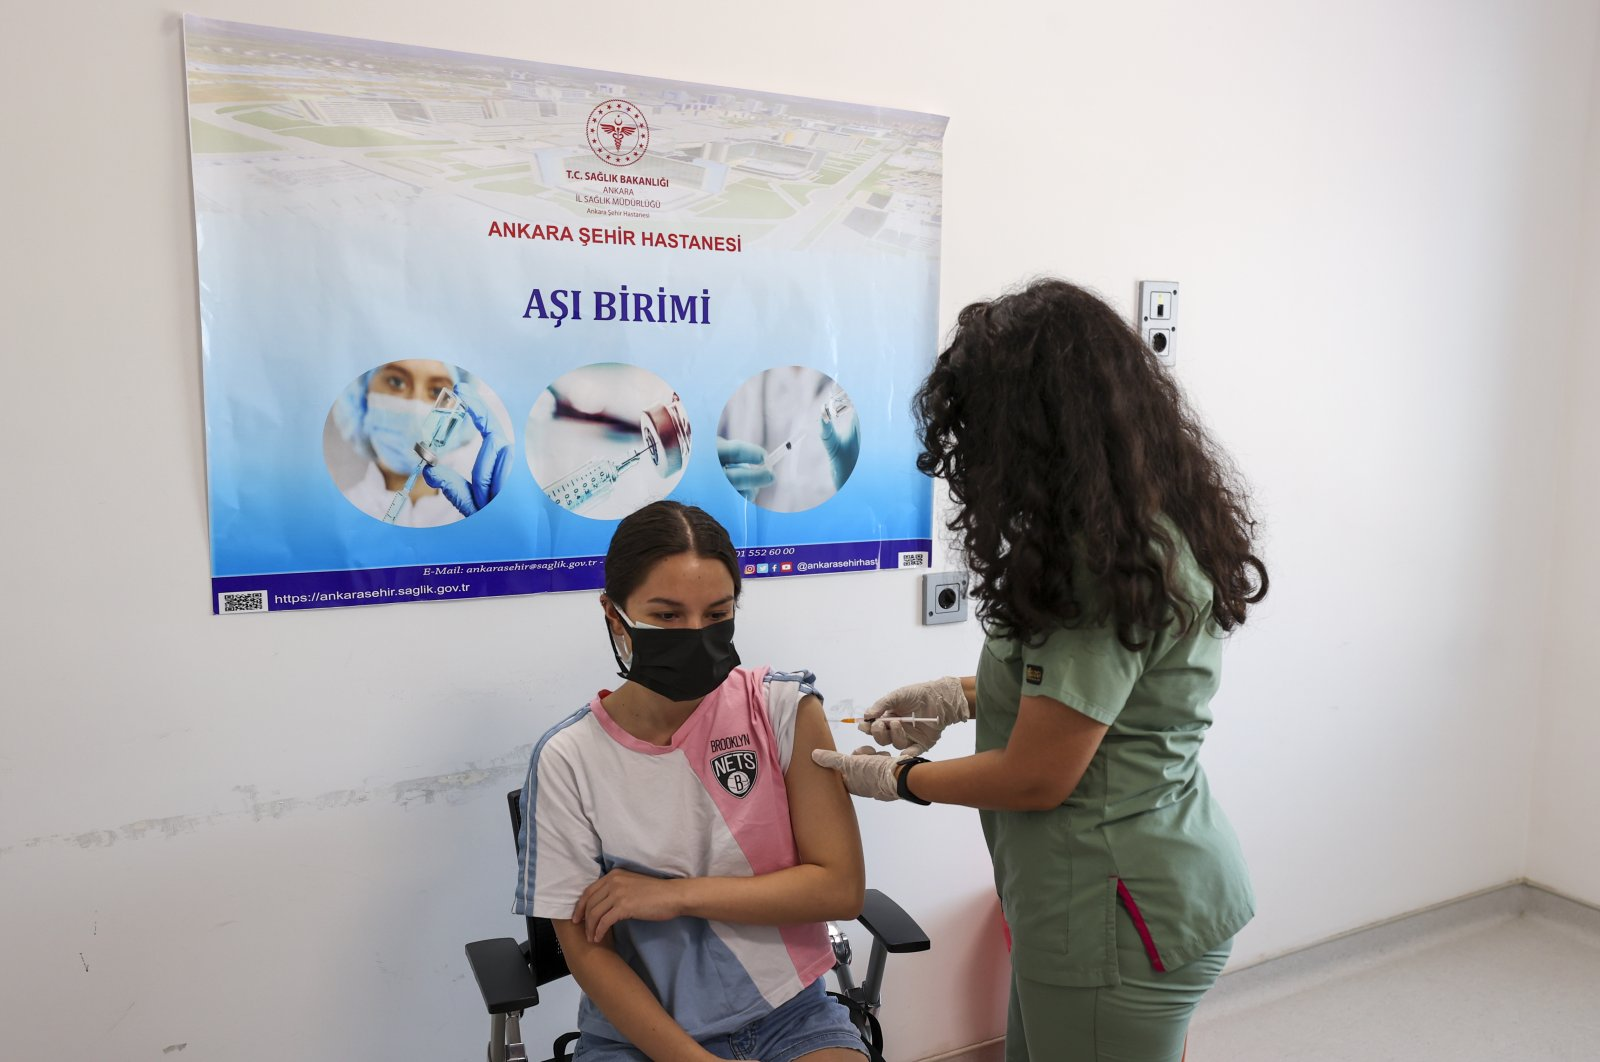 A nurse administers the first dose of vaccine to Aslı Cansu Bora at a hospital, in the capital Ankara, Turkey, June 25, 2021. (AA PHOTO)